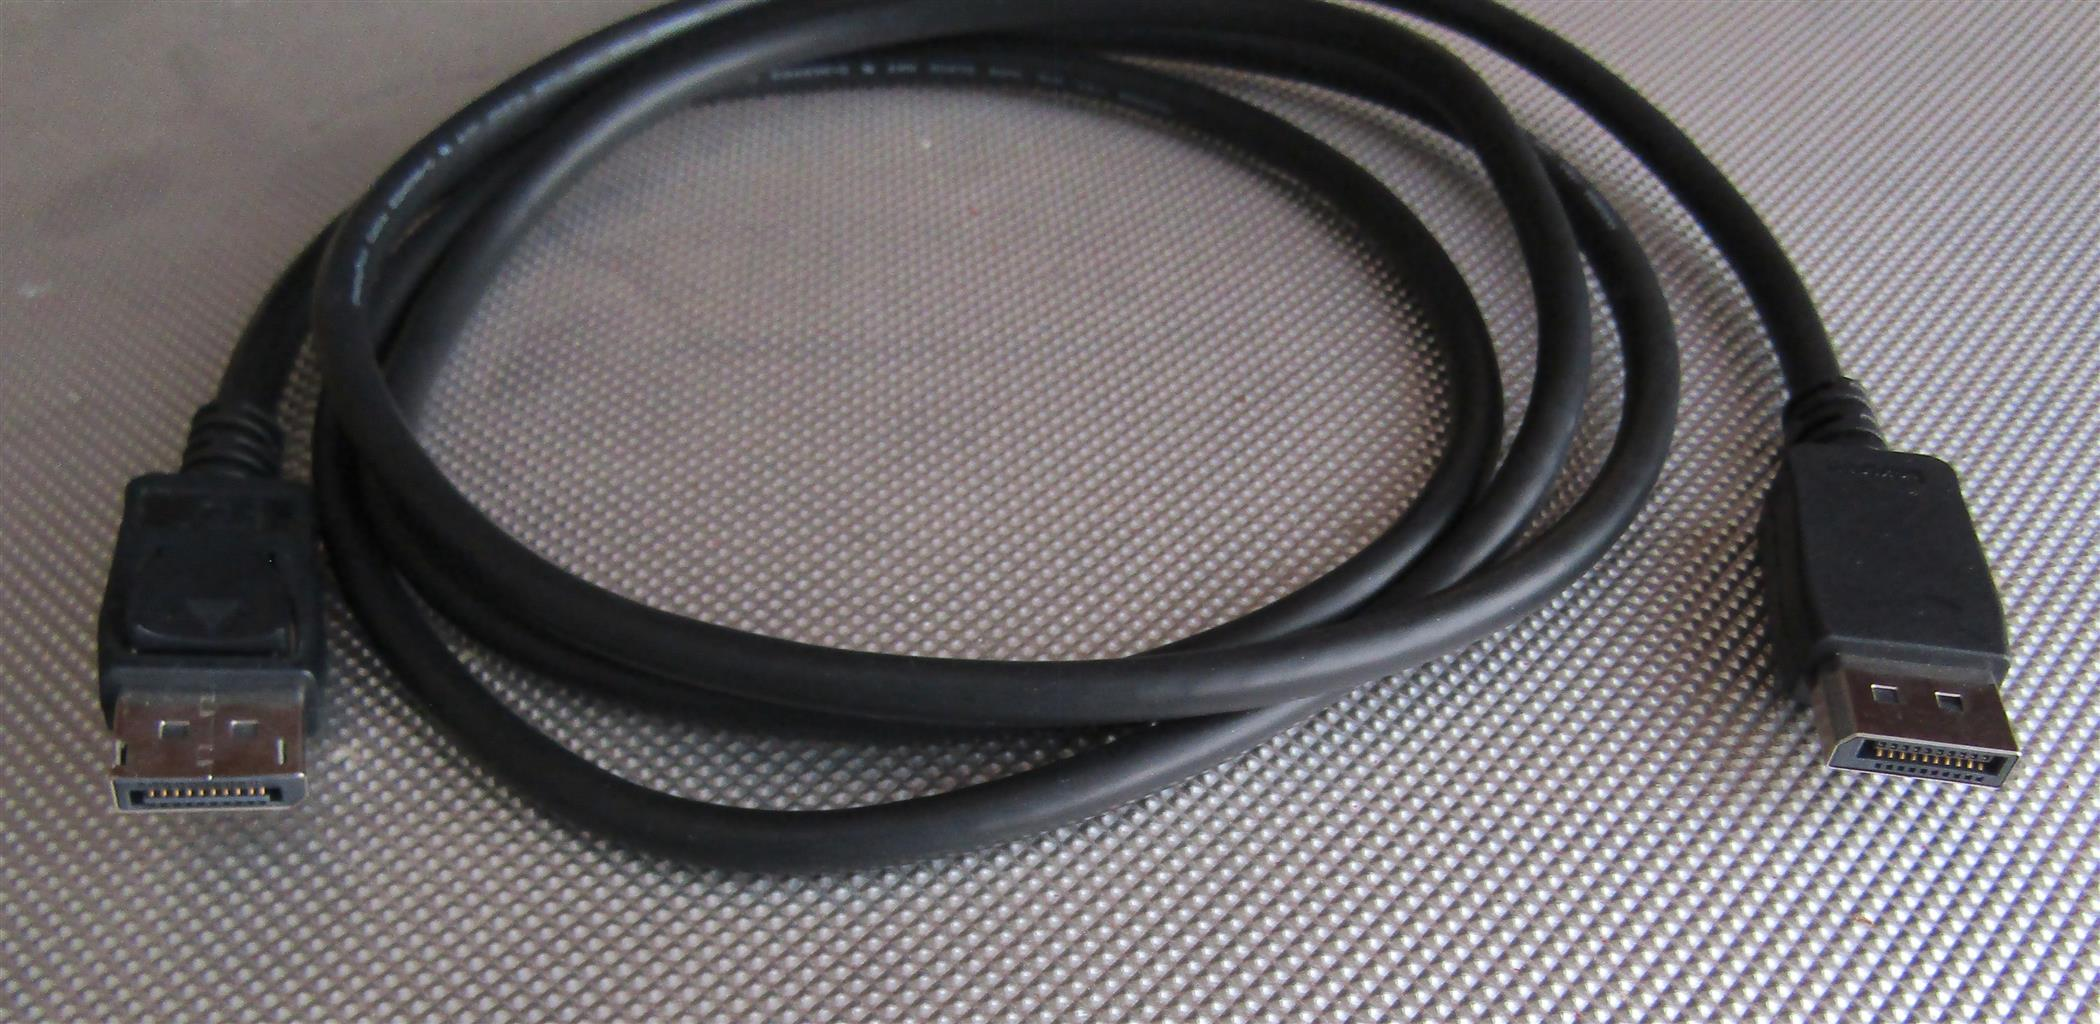 Display Port Cable - 1.8M